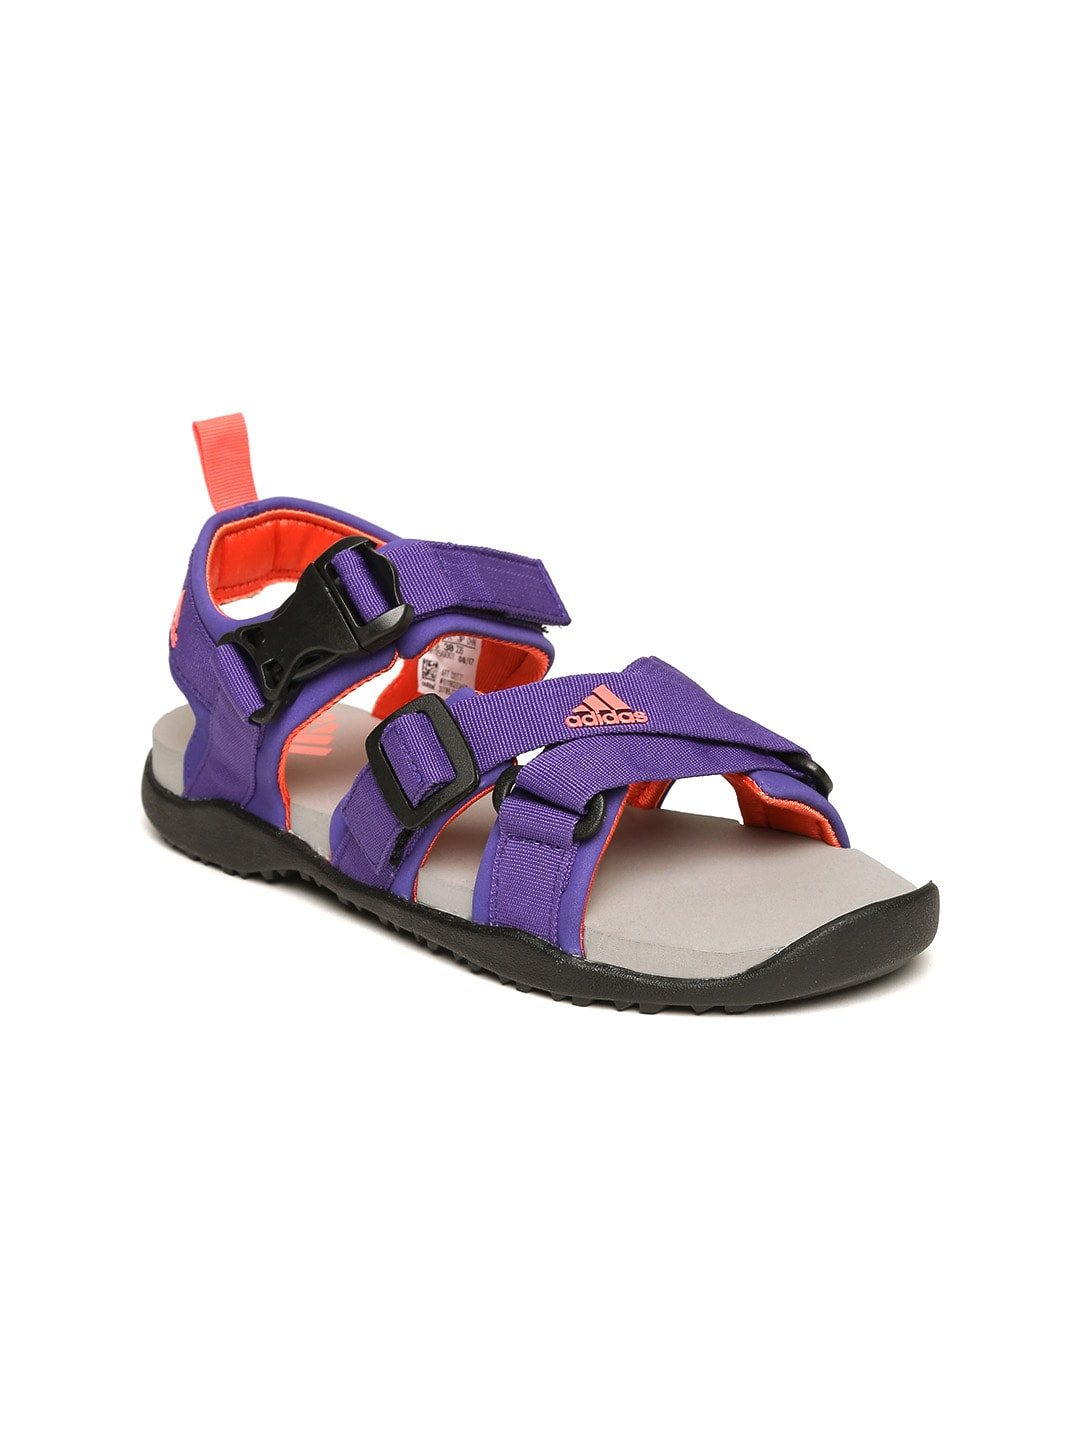 59d1b1fc615 Adidas Floaters - Buy Adidas Sports Sandals Online in India